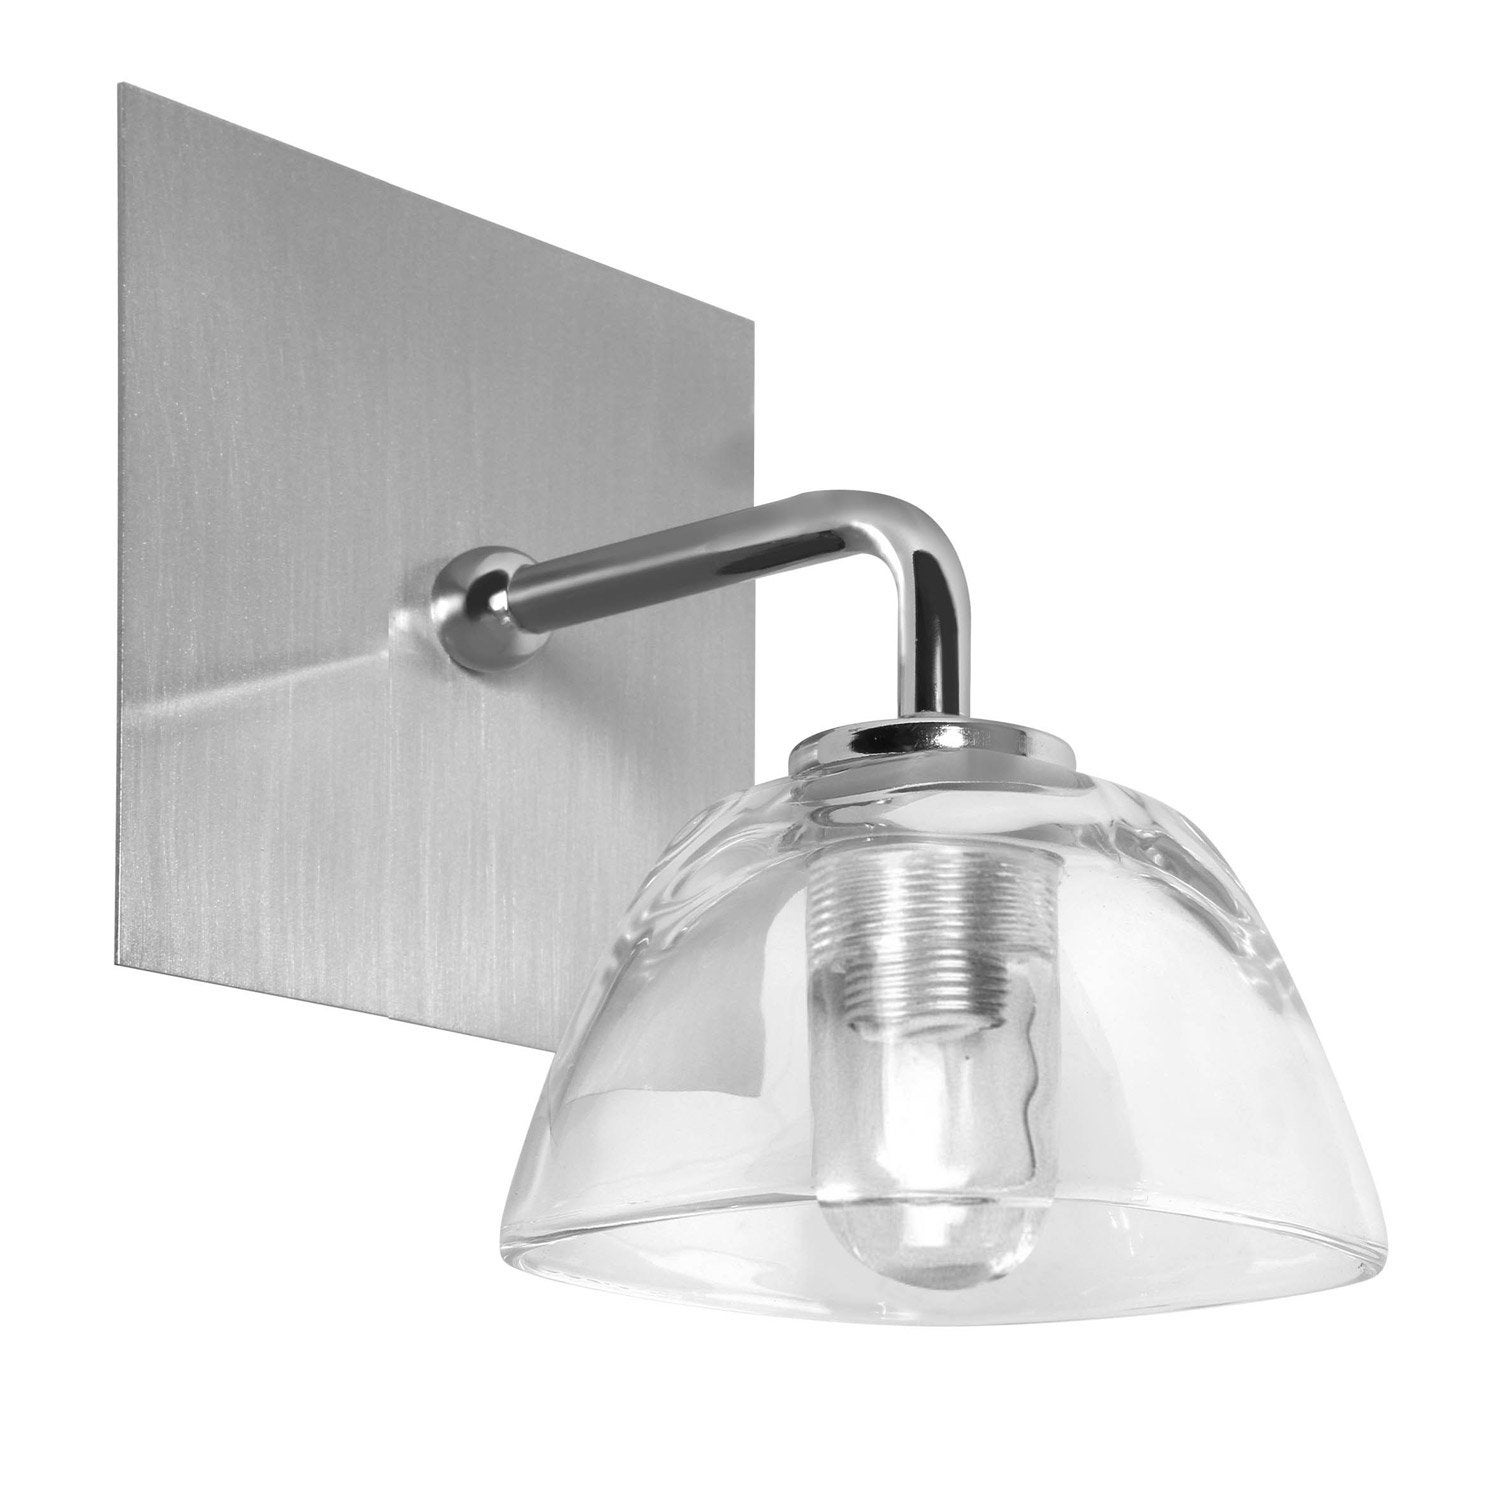 Applique fixer mila halog ne 1 x 28 w g9 chrome leroy merlin - Applique murale salle de bain leroy merlin ...